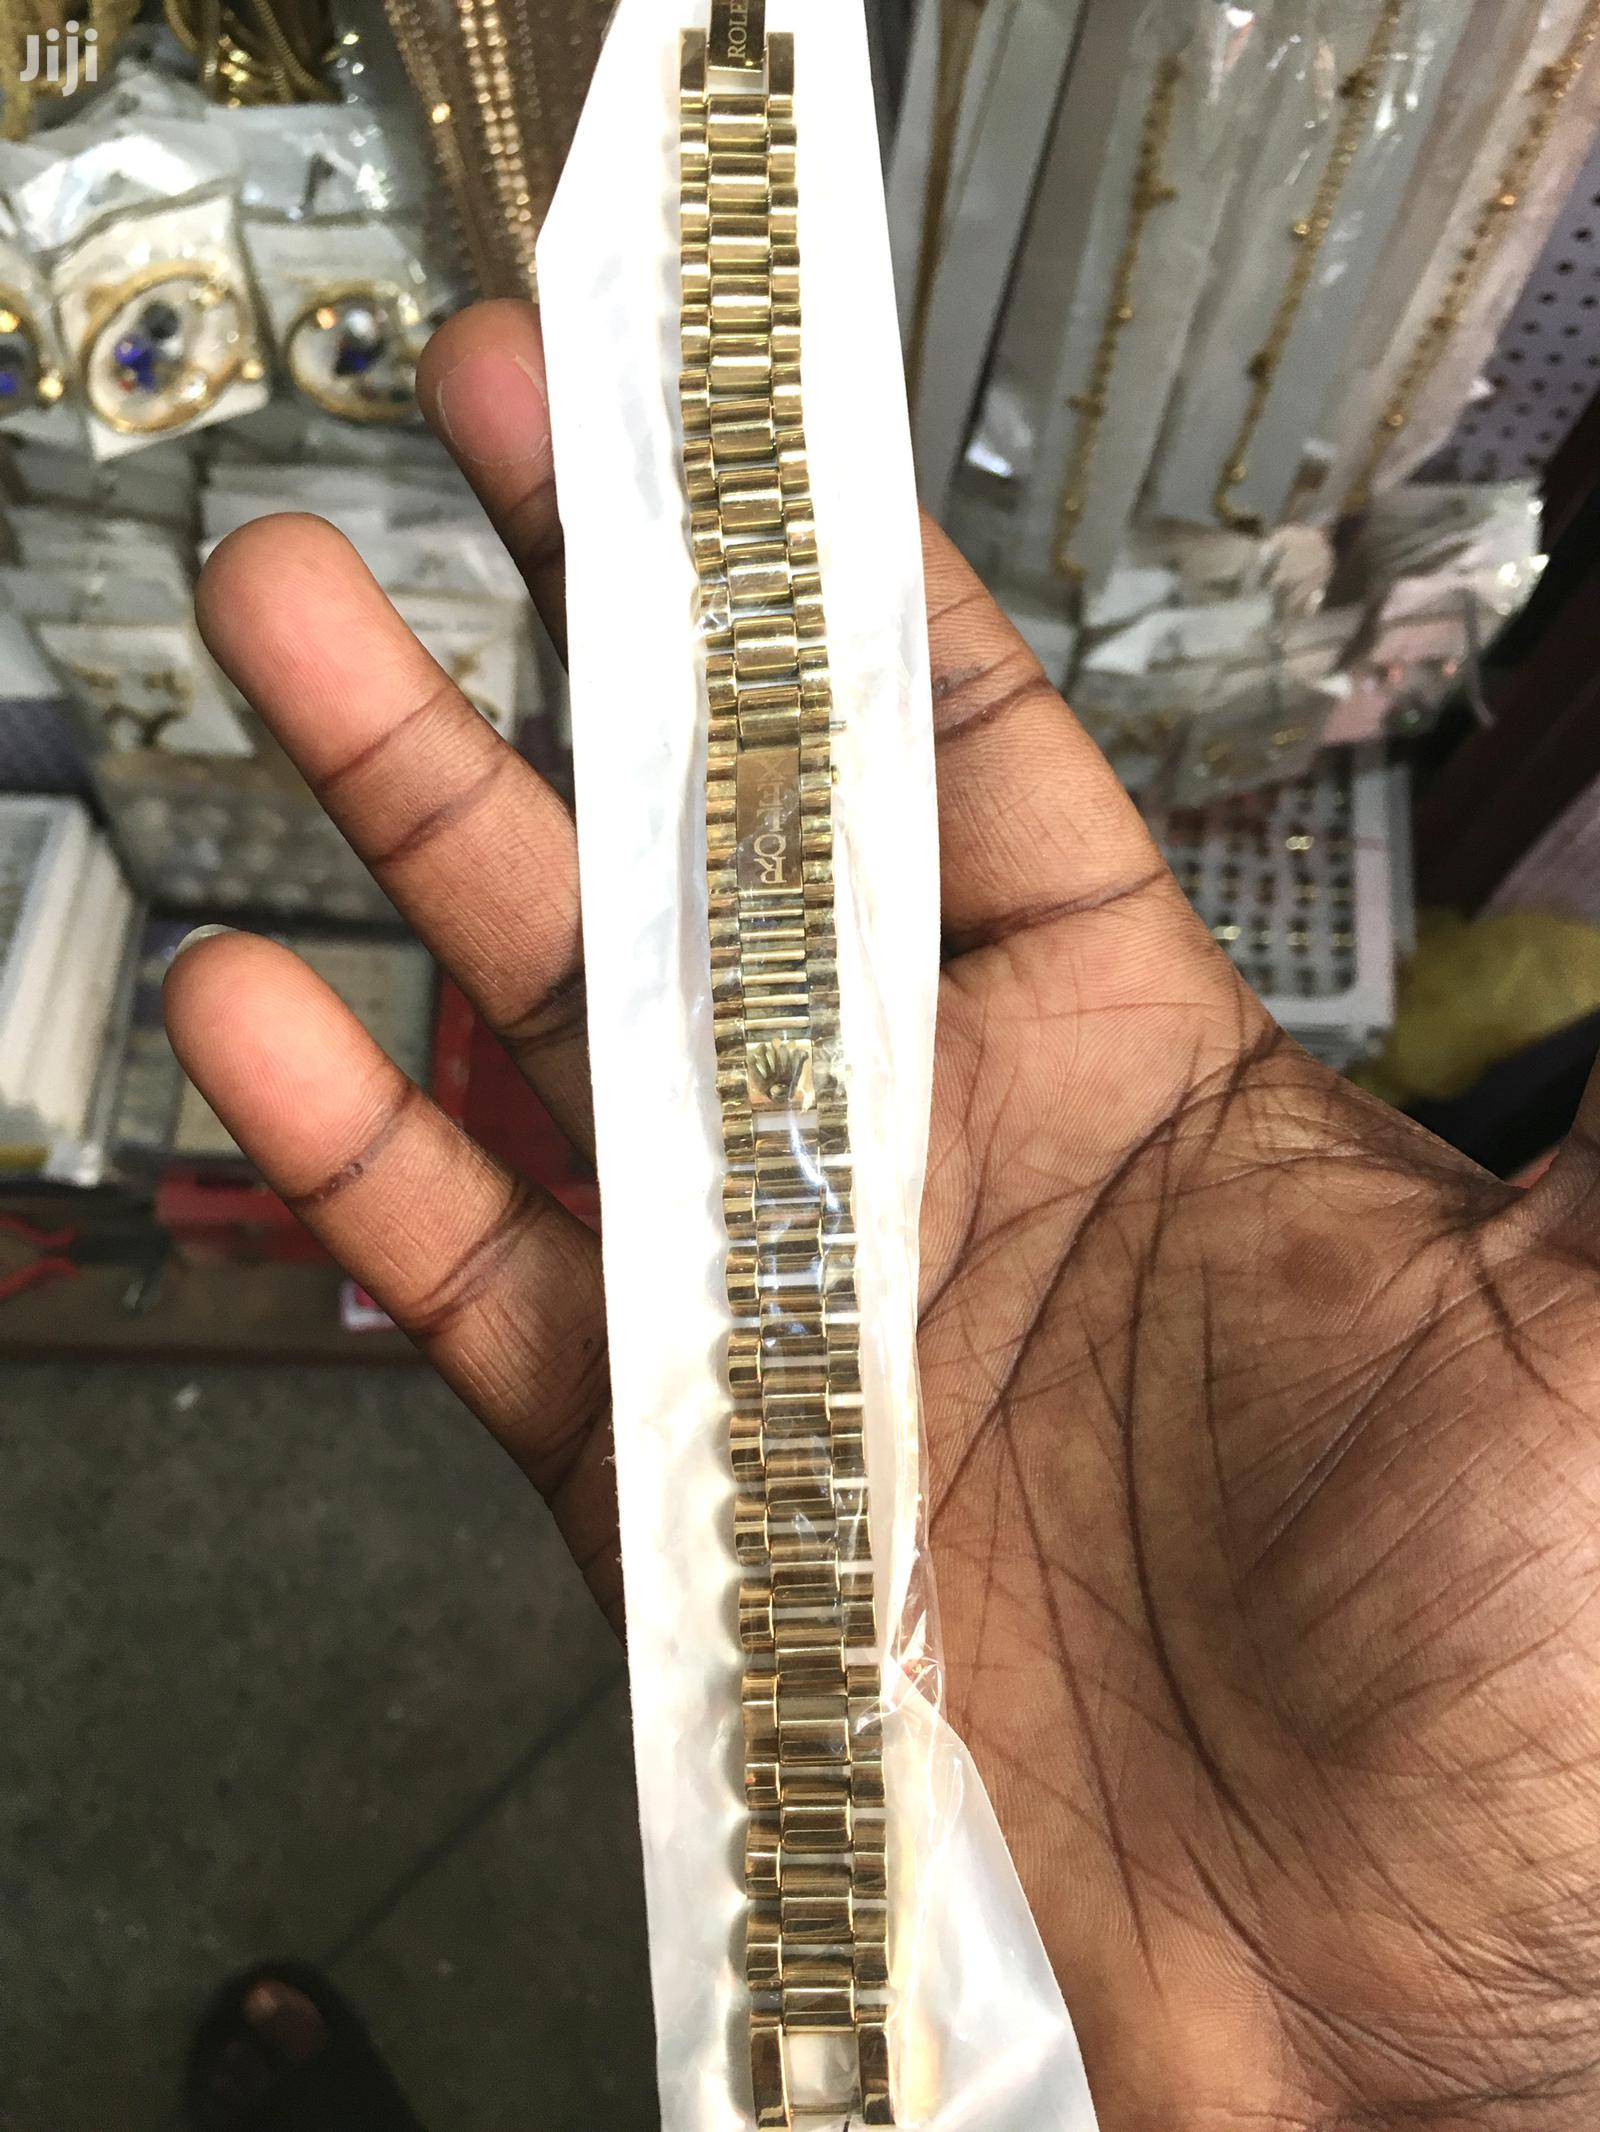 Rolex Bracelet | Jewelry for sale in Accra Metropolitan, Greater Accra, Ghana